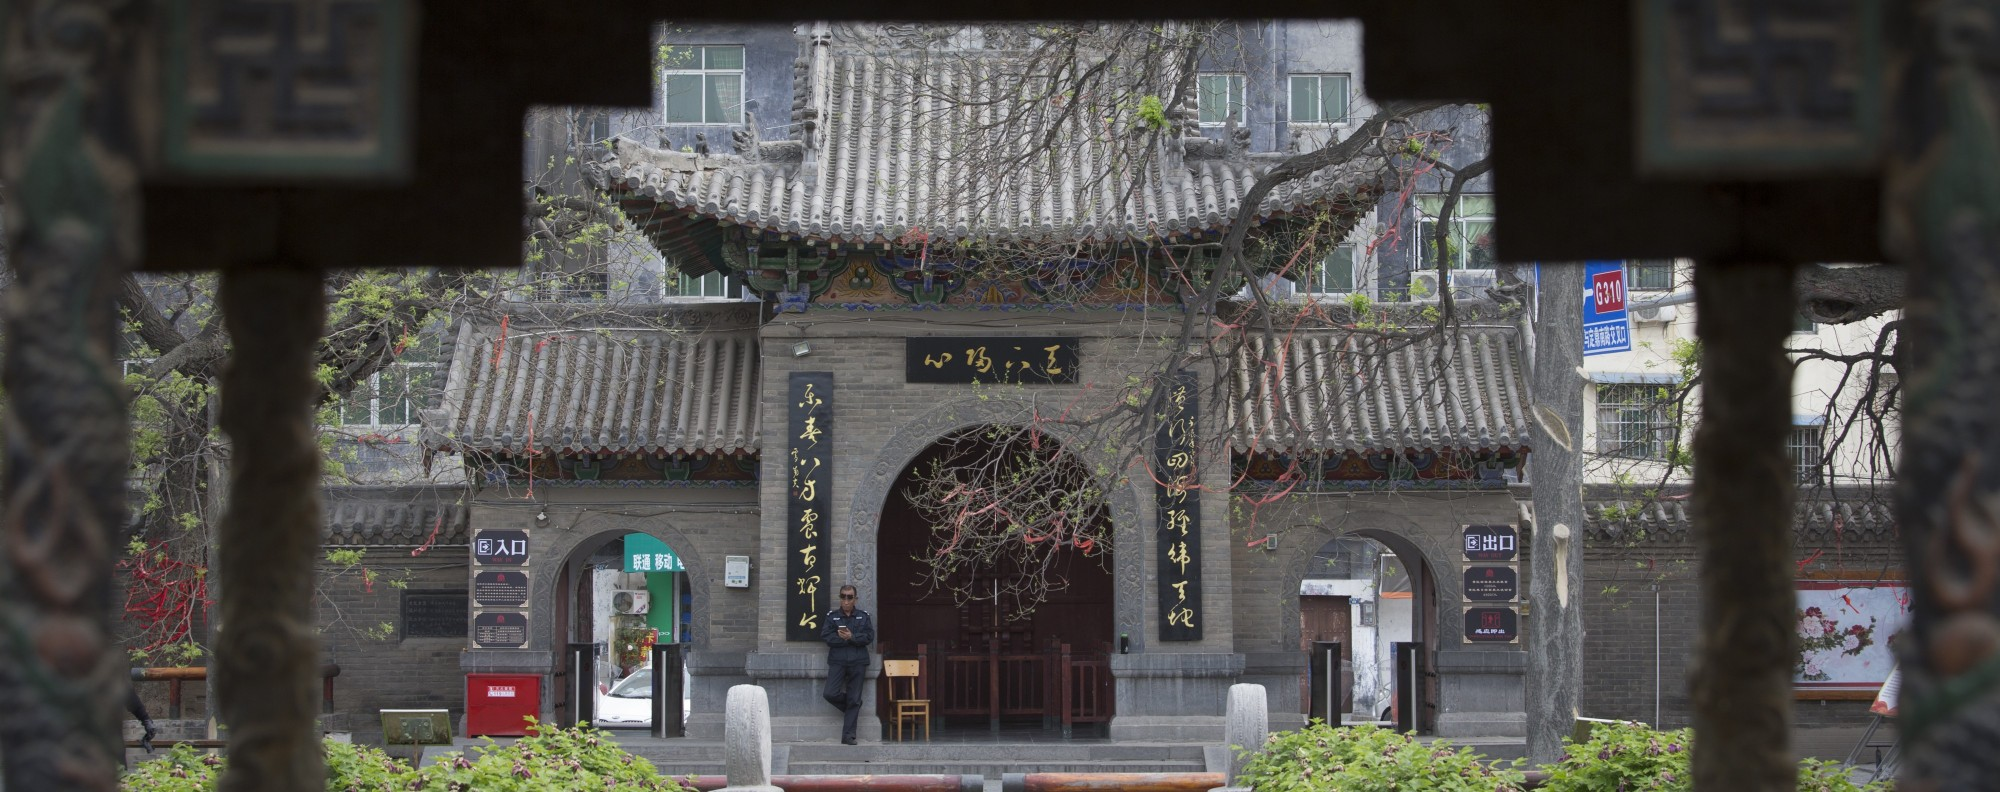 The Duke of Zhou Temple in Luoyang, Henan. Picture: May Tse